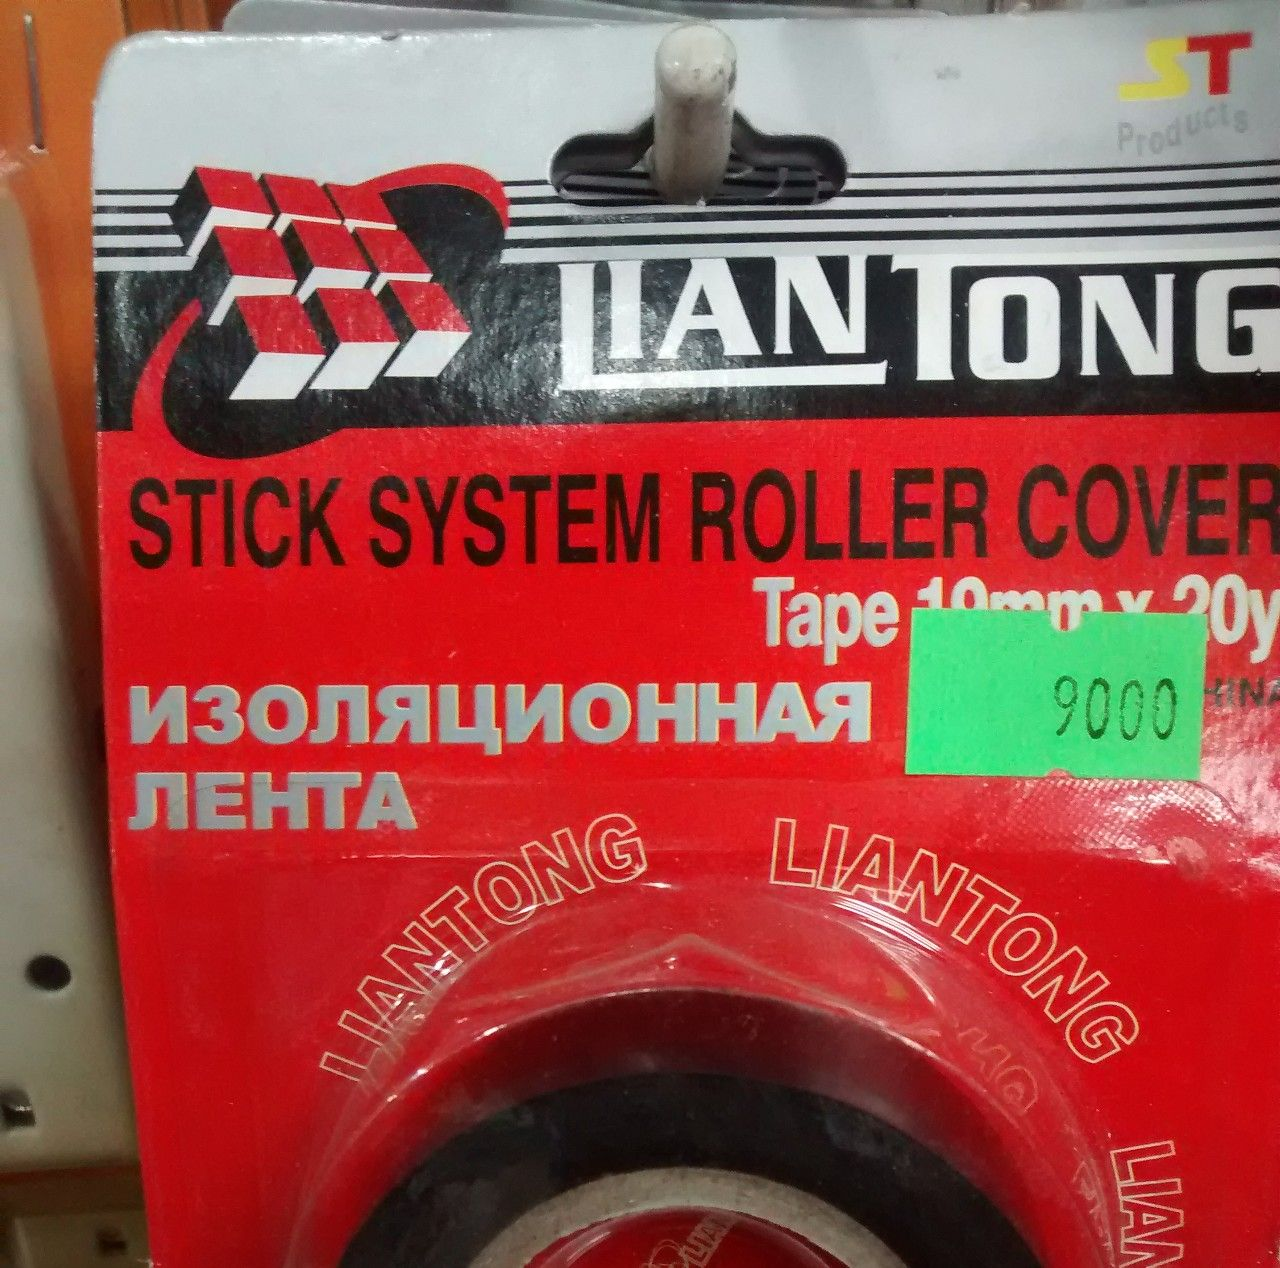 Stick System Roller Cover